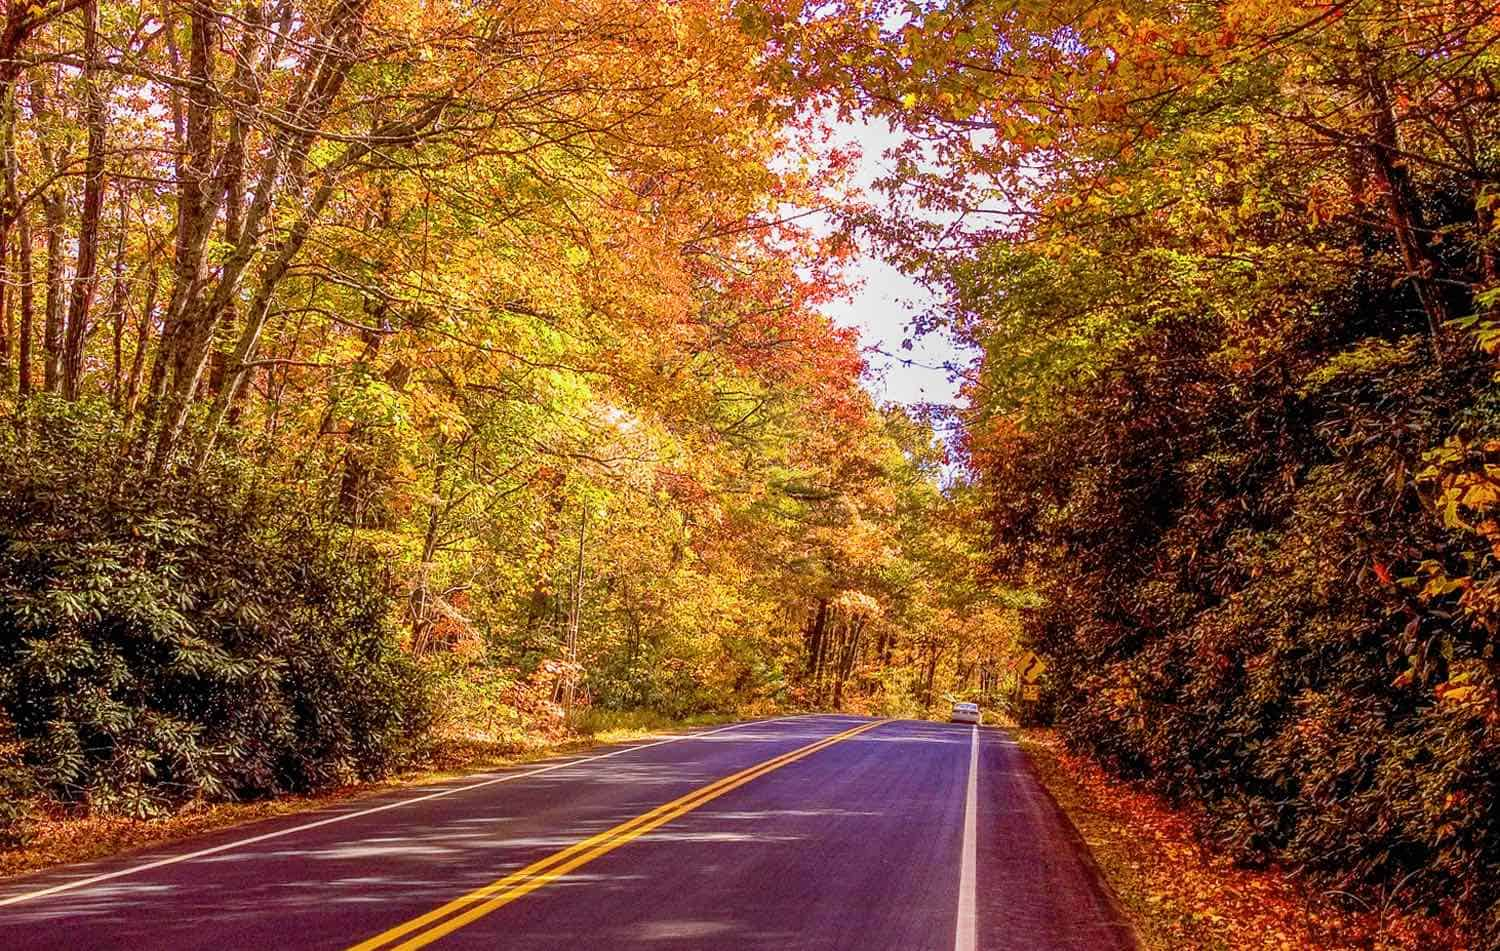 Fall in the South: Admire Autumn Without the Crowds